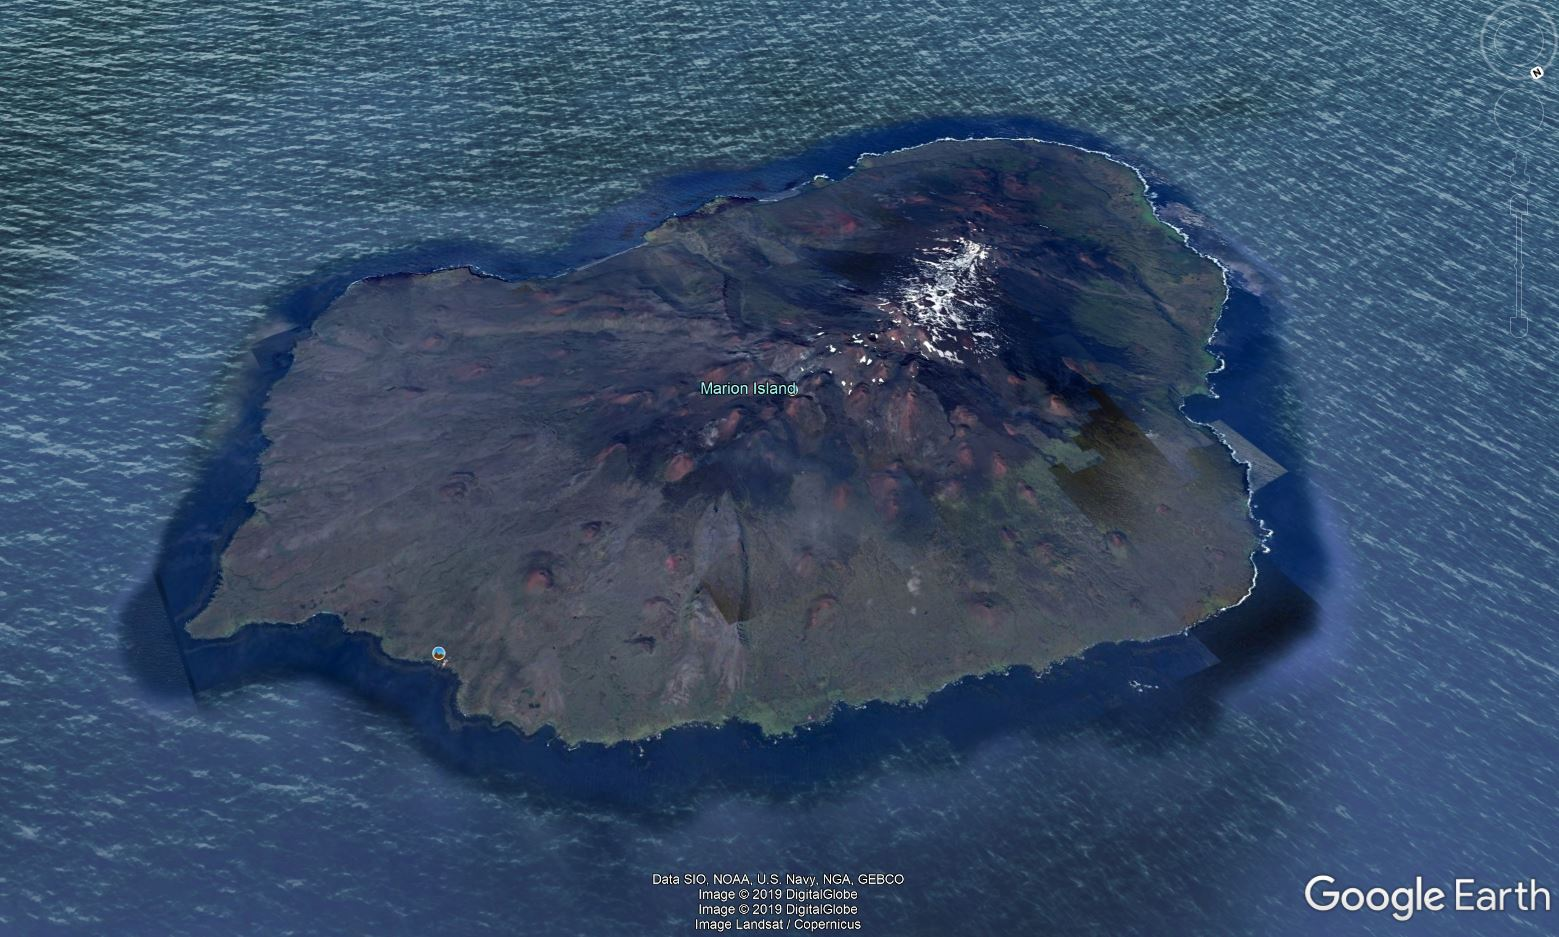 Marion Island- Google Earth